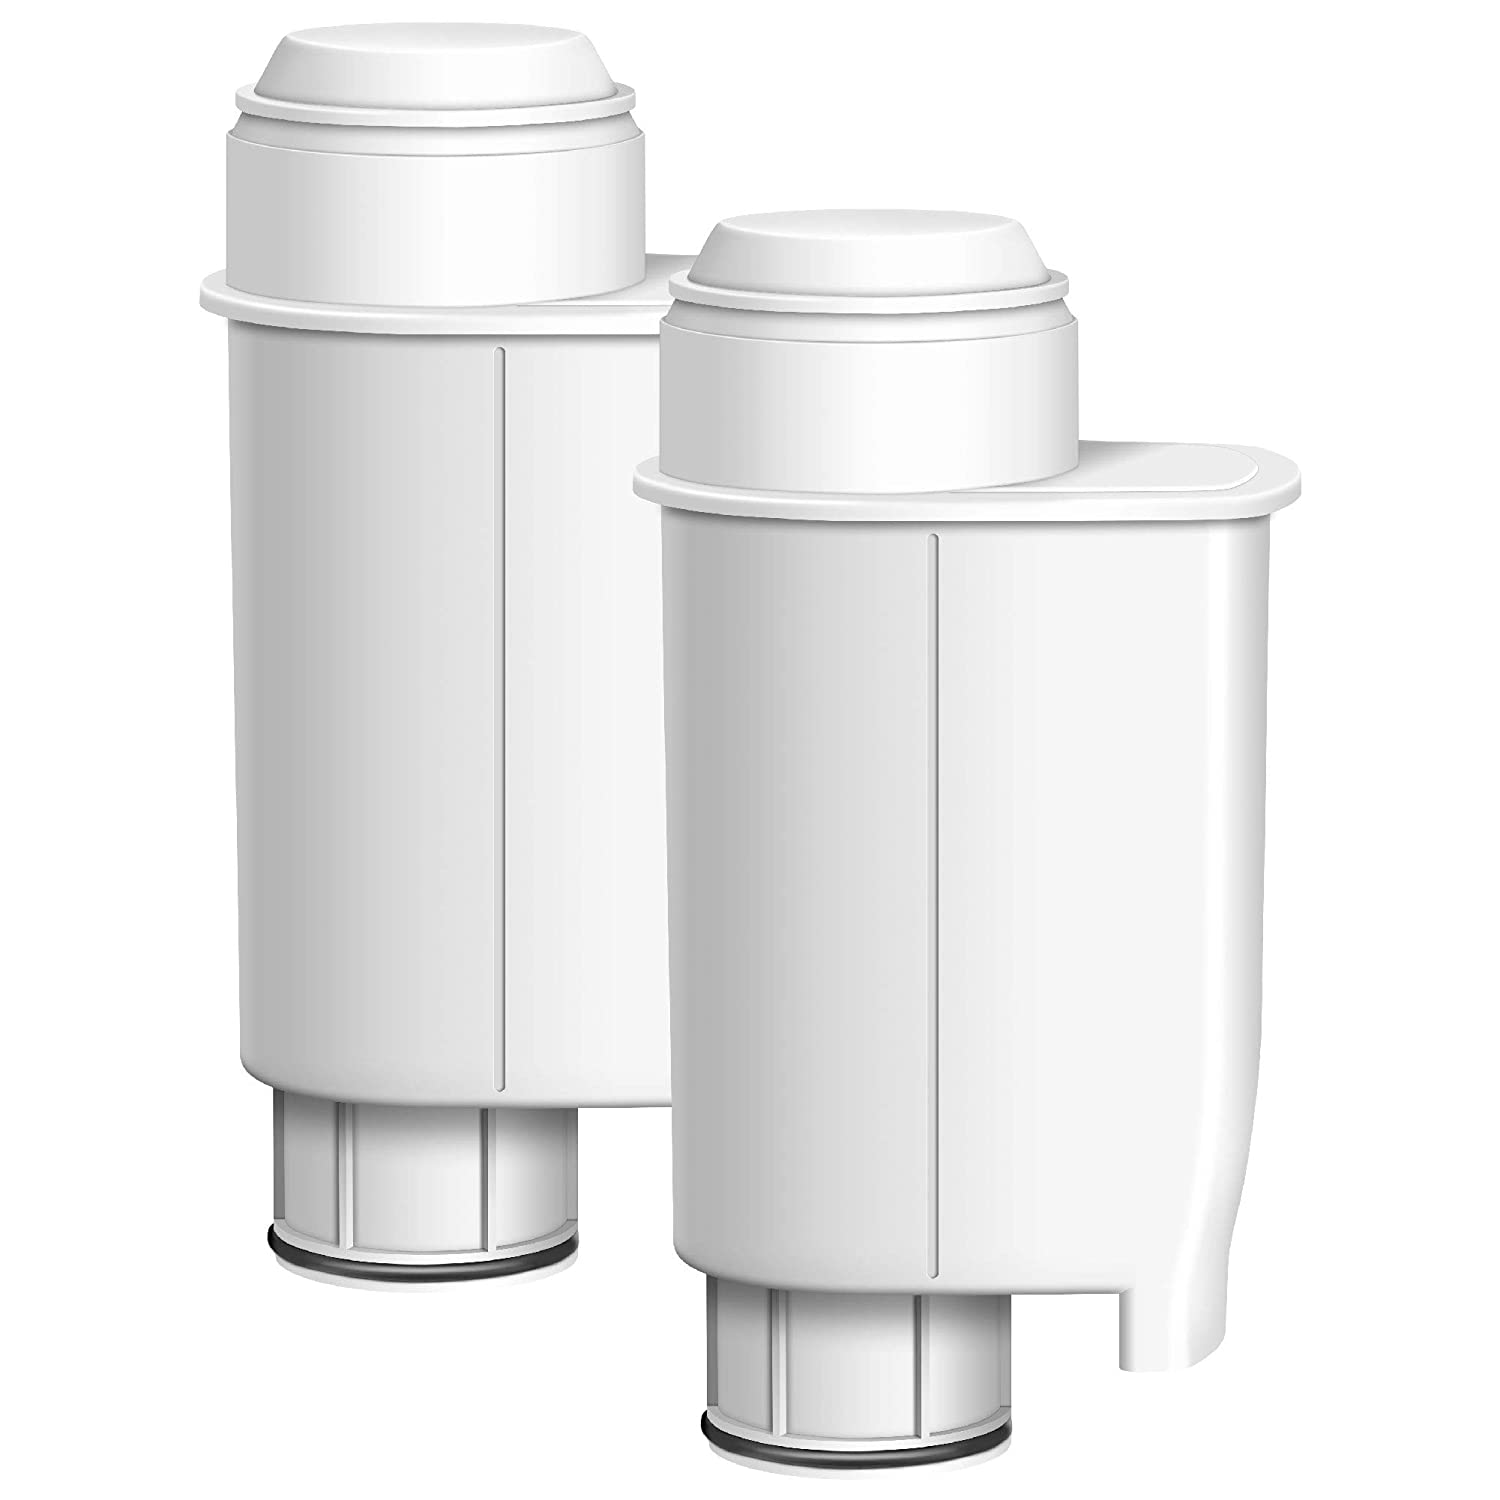 AQUACREST Intenza+ Coffee Water Filter, Compatible with Brita Intenza+, Philips, Saeco, CA6702/00, Intenza Coffee Water Filter (Pack of 2)